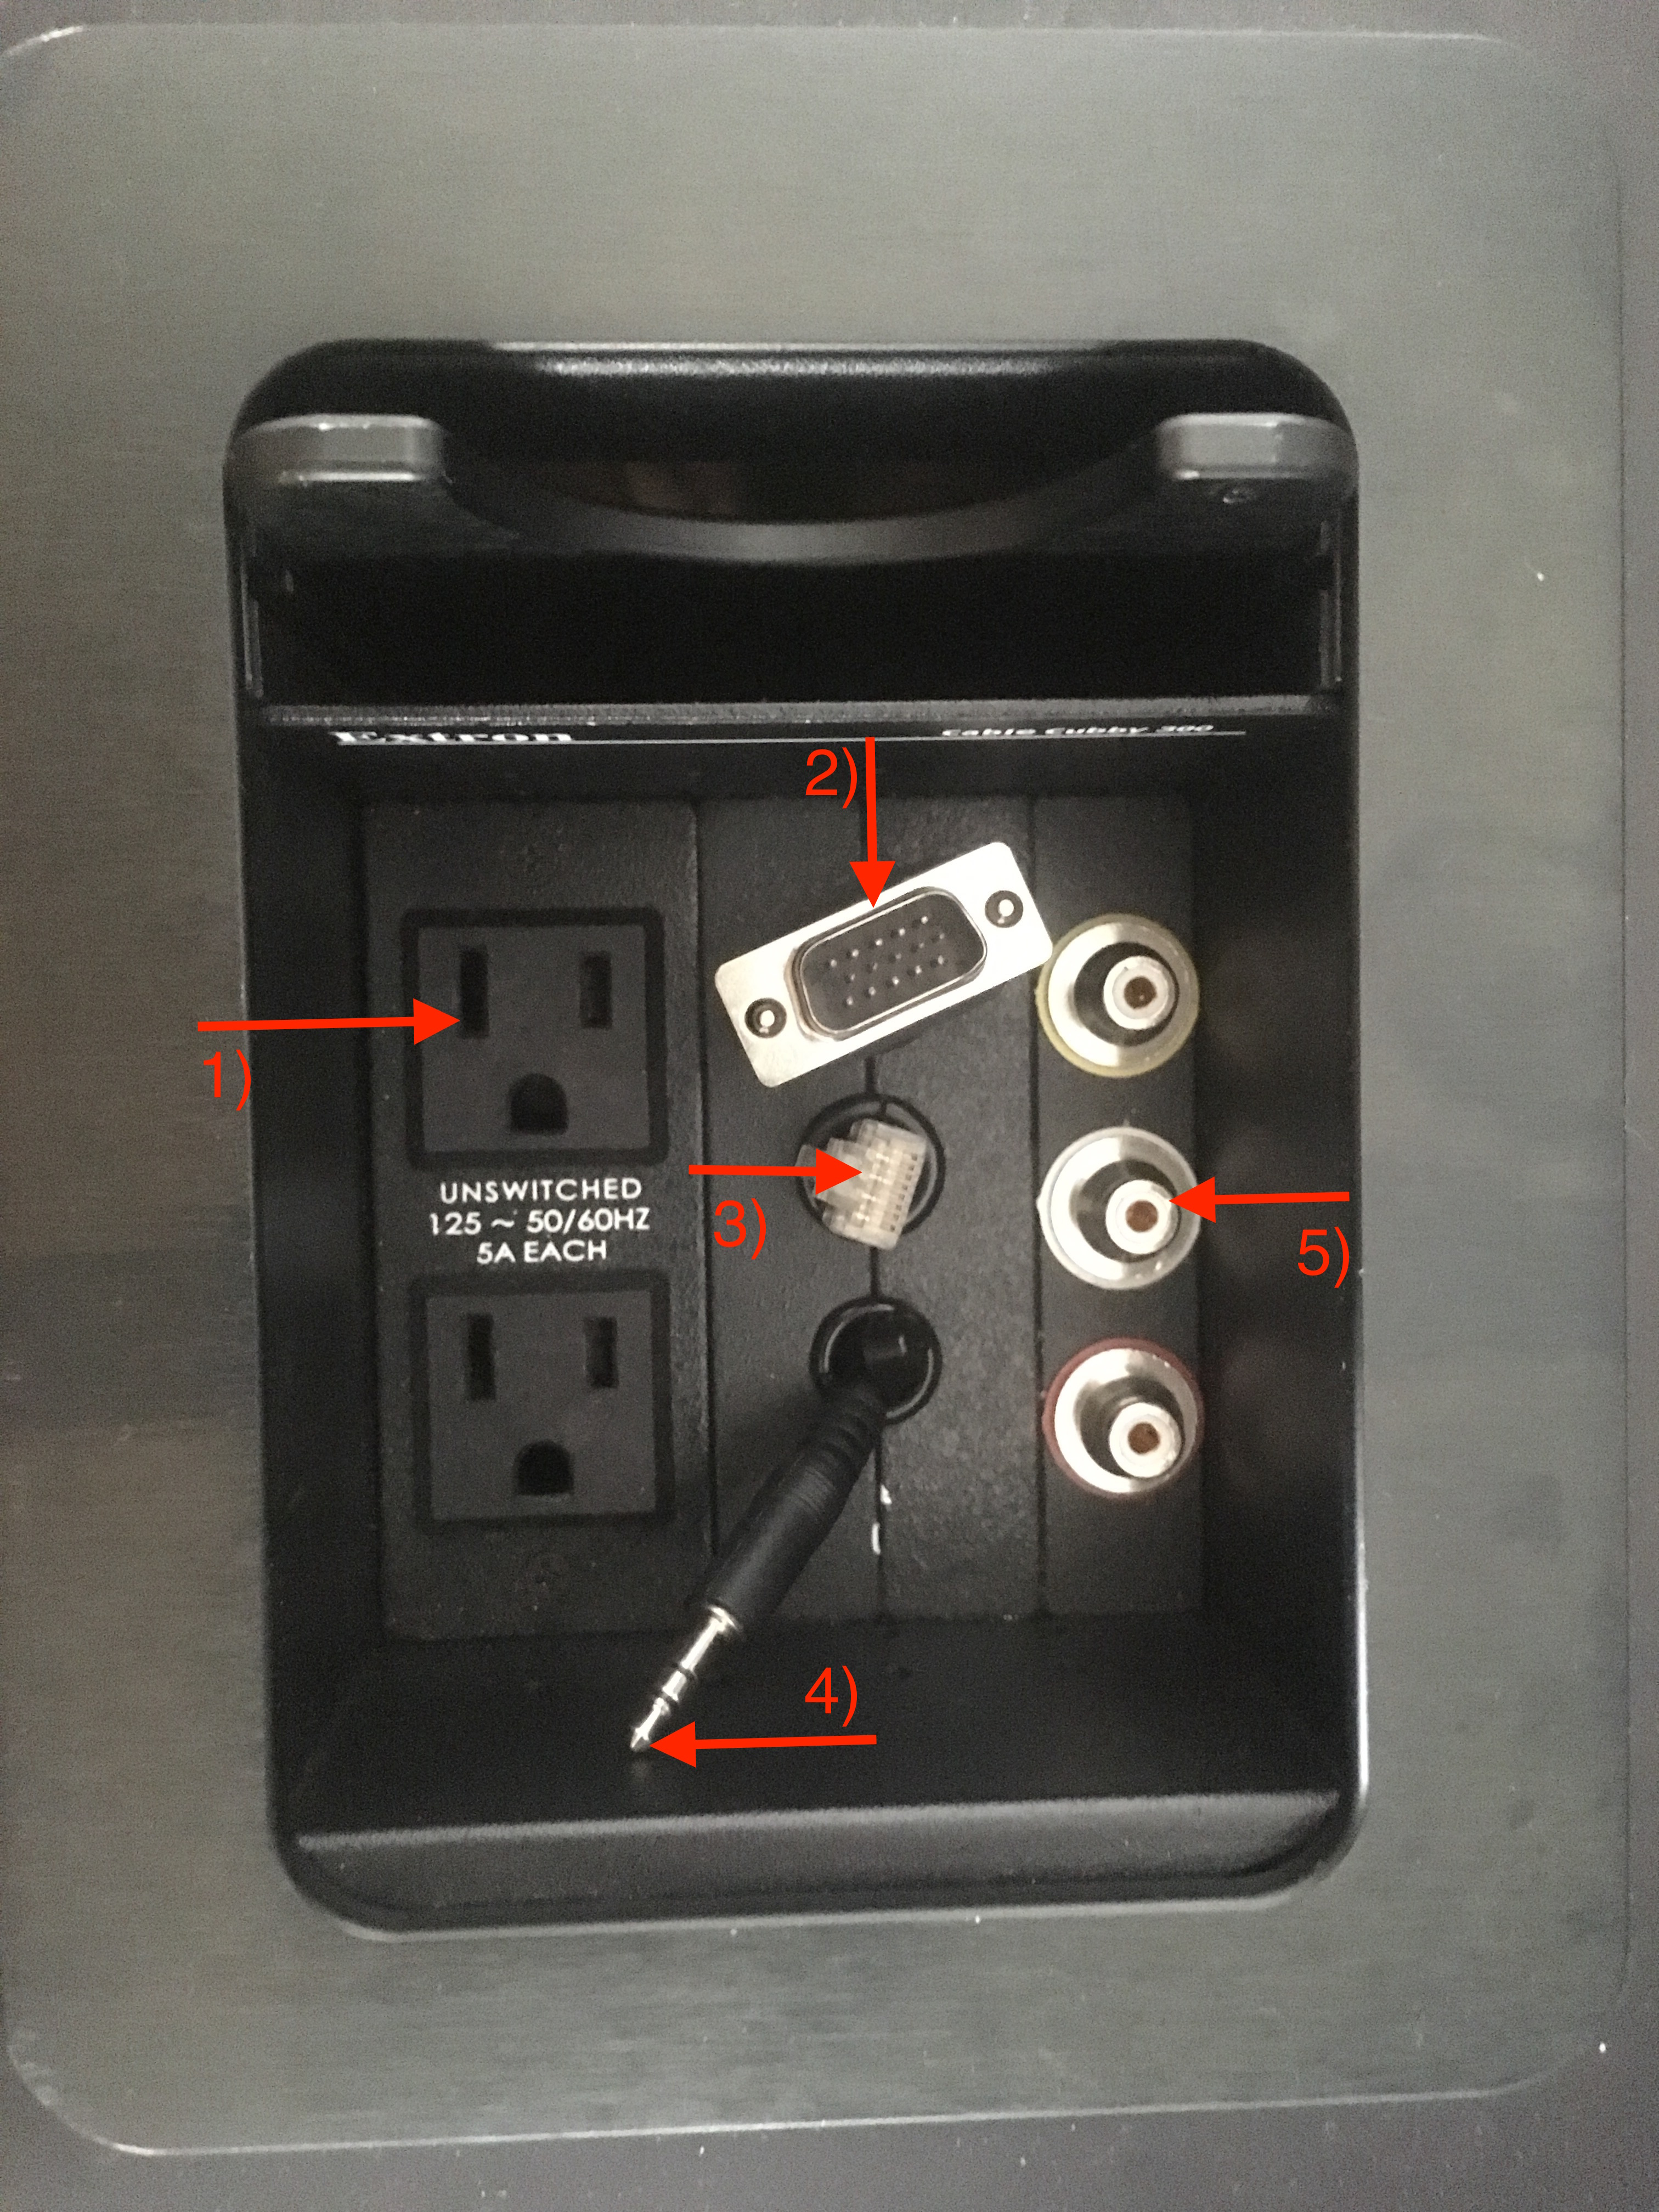 Photo of the cable cubby with the inputs labeled as number 5